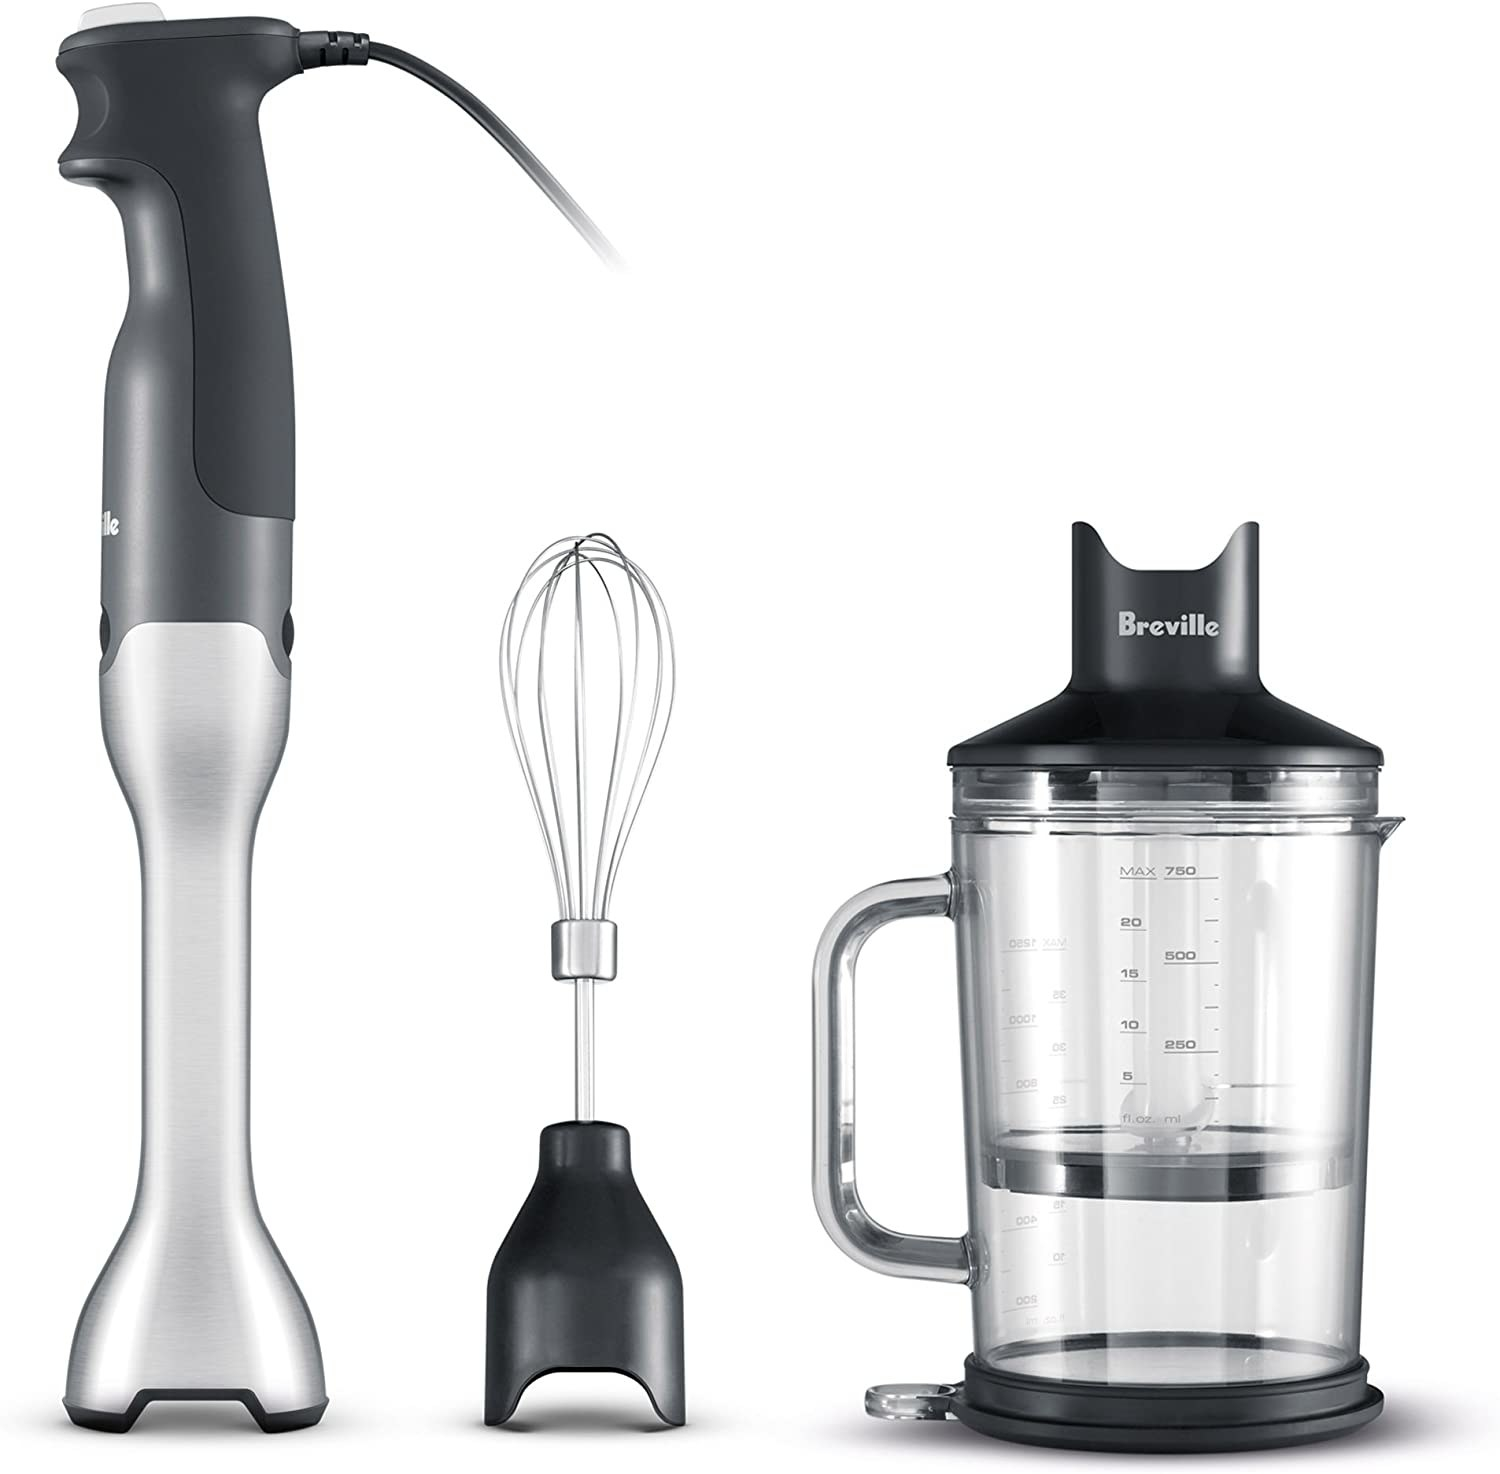 Multiple parts of an immersion blender isolated on a white background